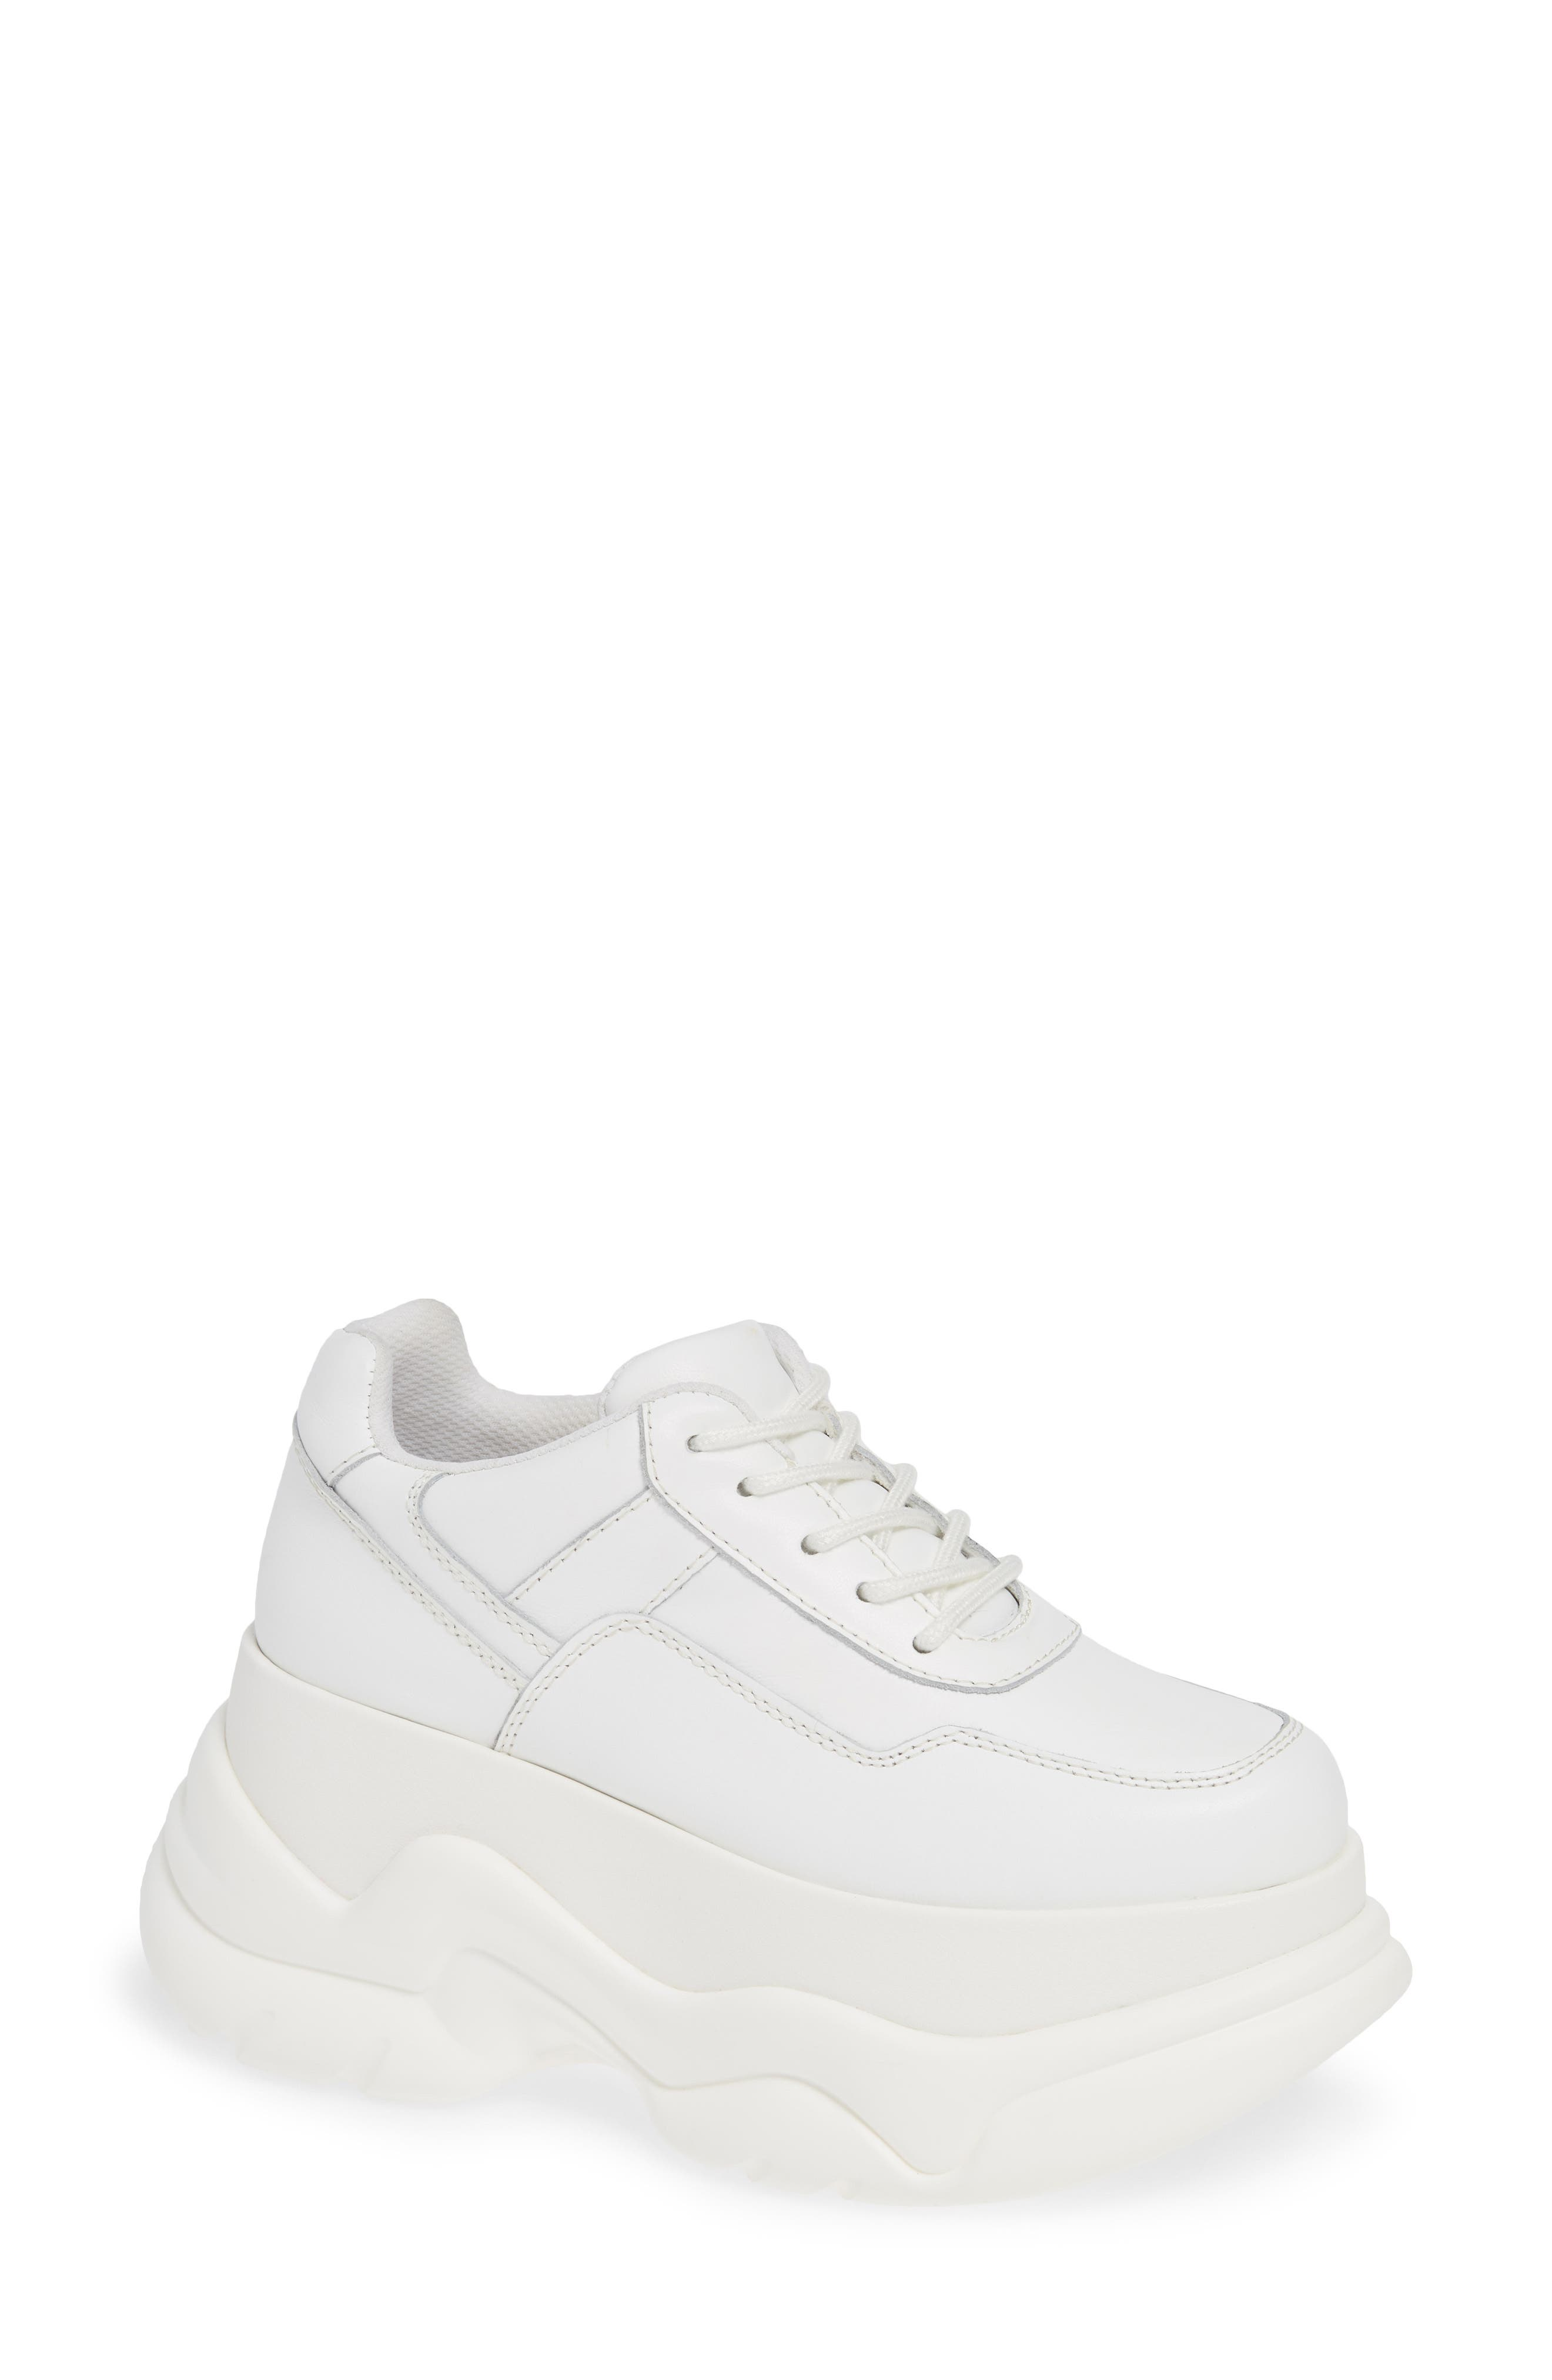 Most Def Wedge Sneaker,                         Main,                         color, WHITE/ WHITE LEATHER